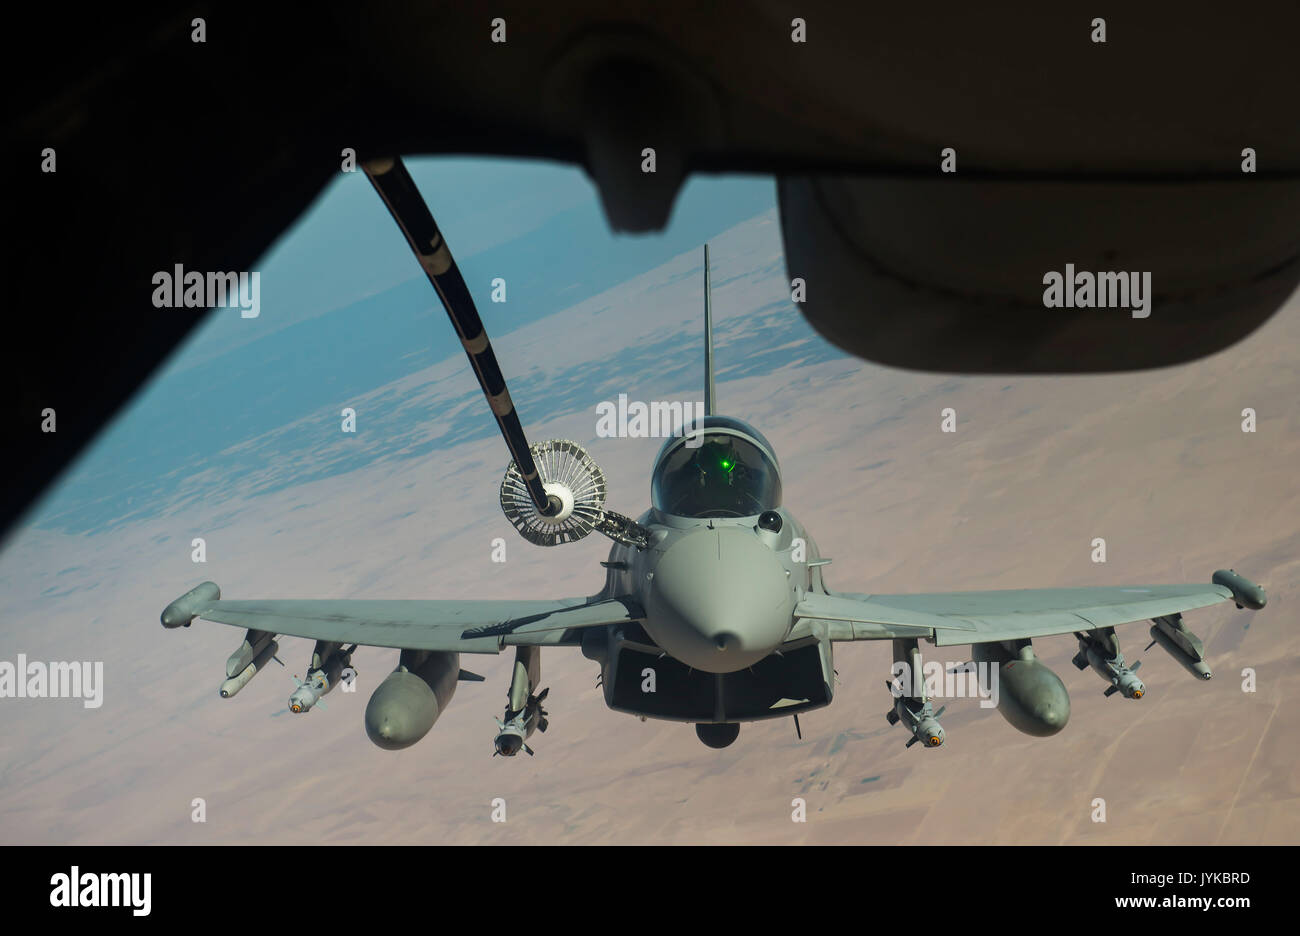 A Royal Air Force FGR4 Typhoon receives fuel from a KC-10 Extender during a mission in support of Operation Inherent Resolve, Aug. 7, 2017. The Typhoon provides the RAF with a highly capable and extremely agile multi-role combat aircraft, capable of being deployed in the full spectrum of air operations, including air policing, peace support, and high intensity conflict. (U.S. Air Force photo by Staff Sgt. Trevor T. McBride) - Stock Image